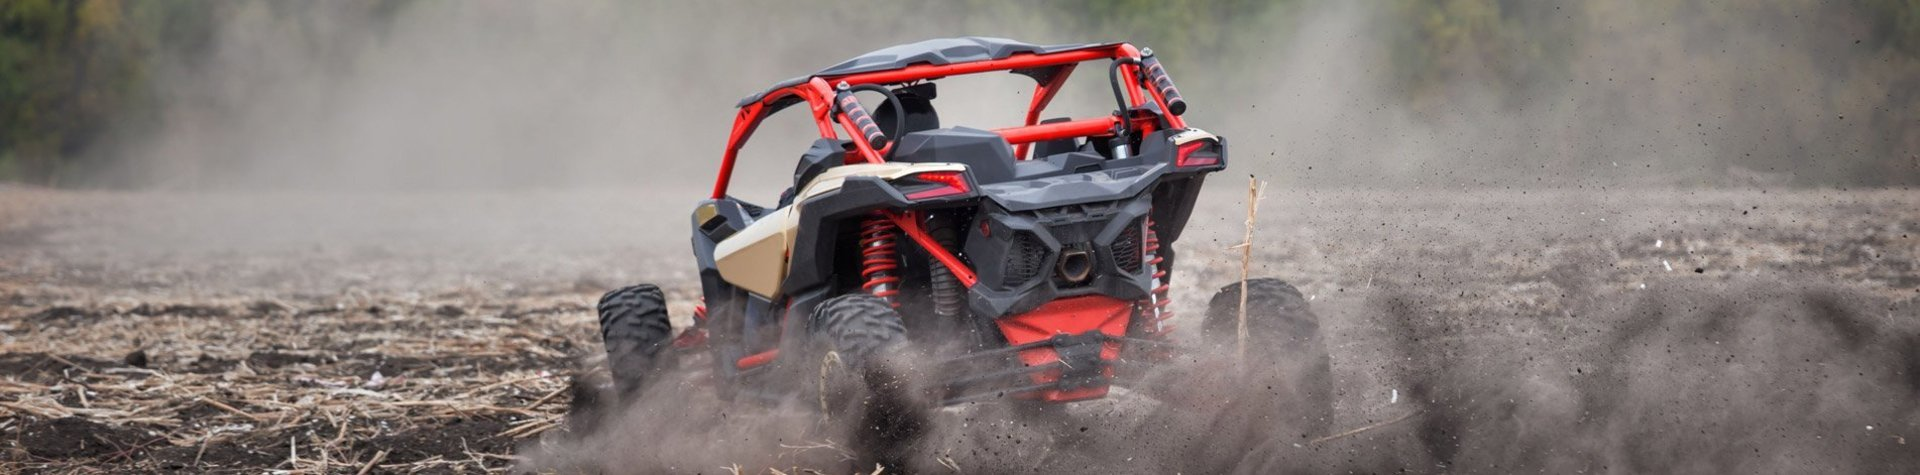 dirt buggy driviing in field